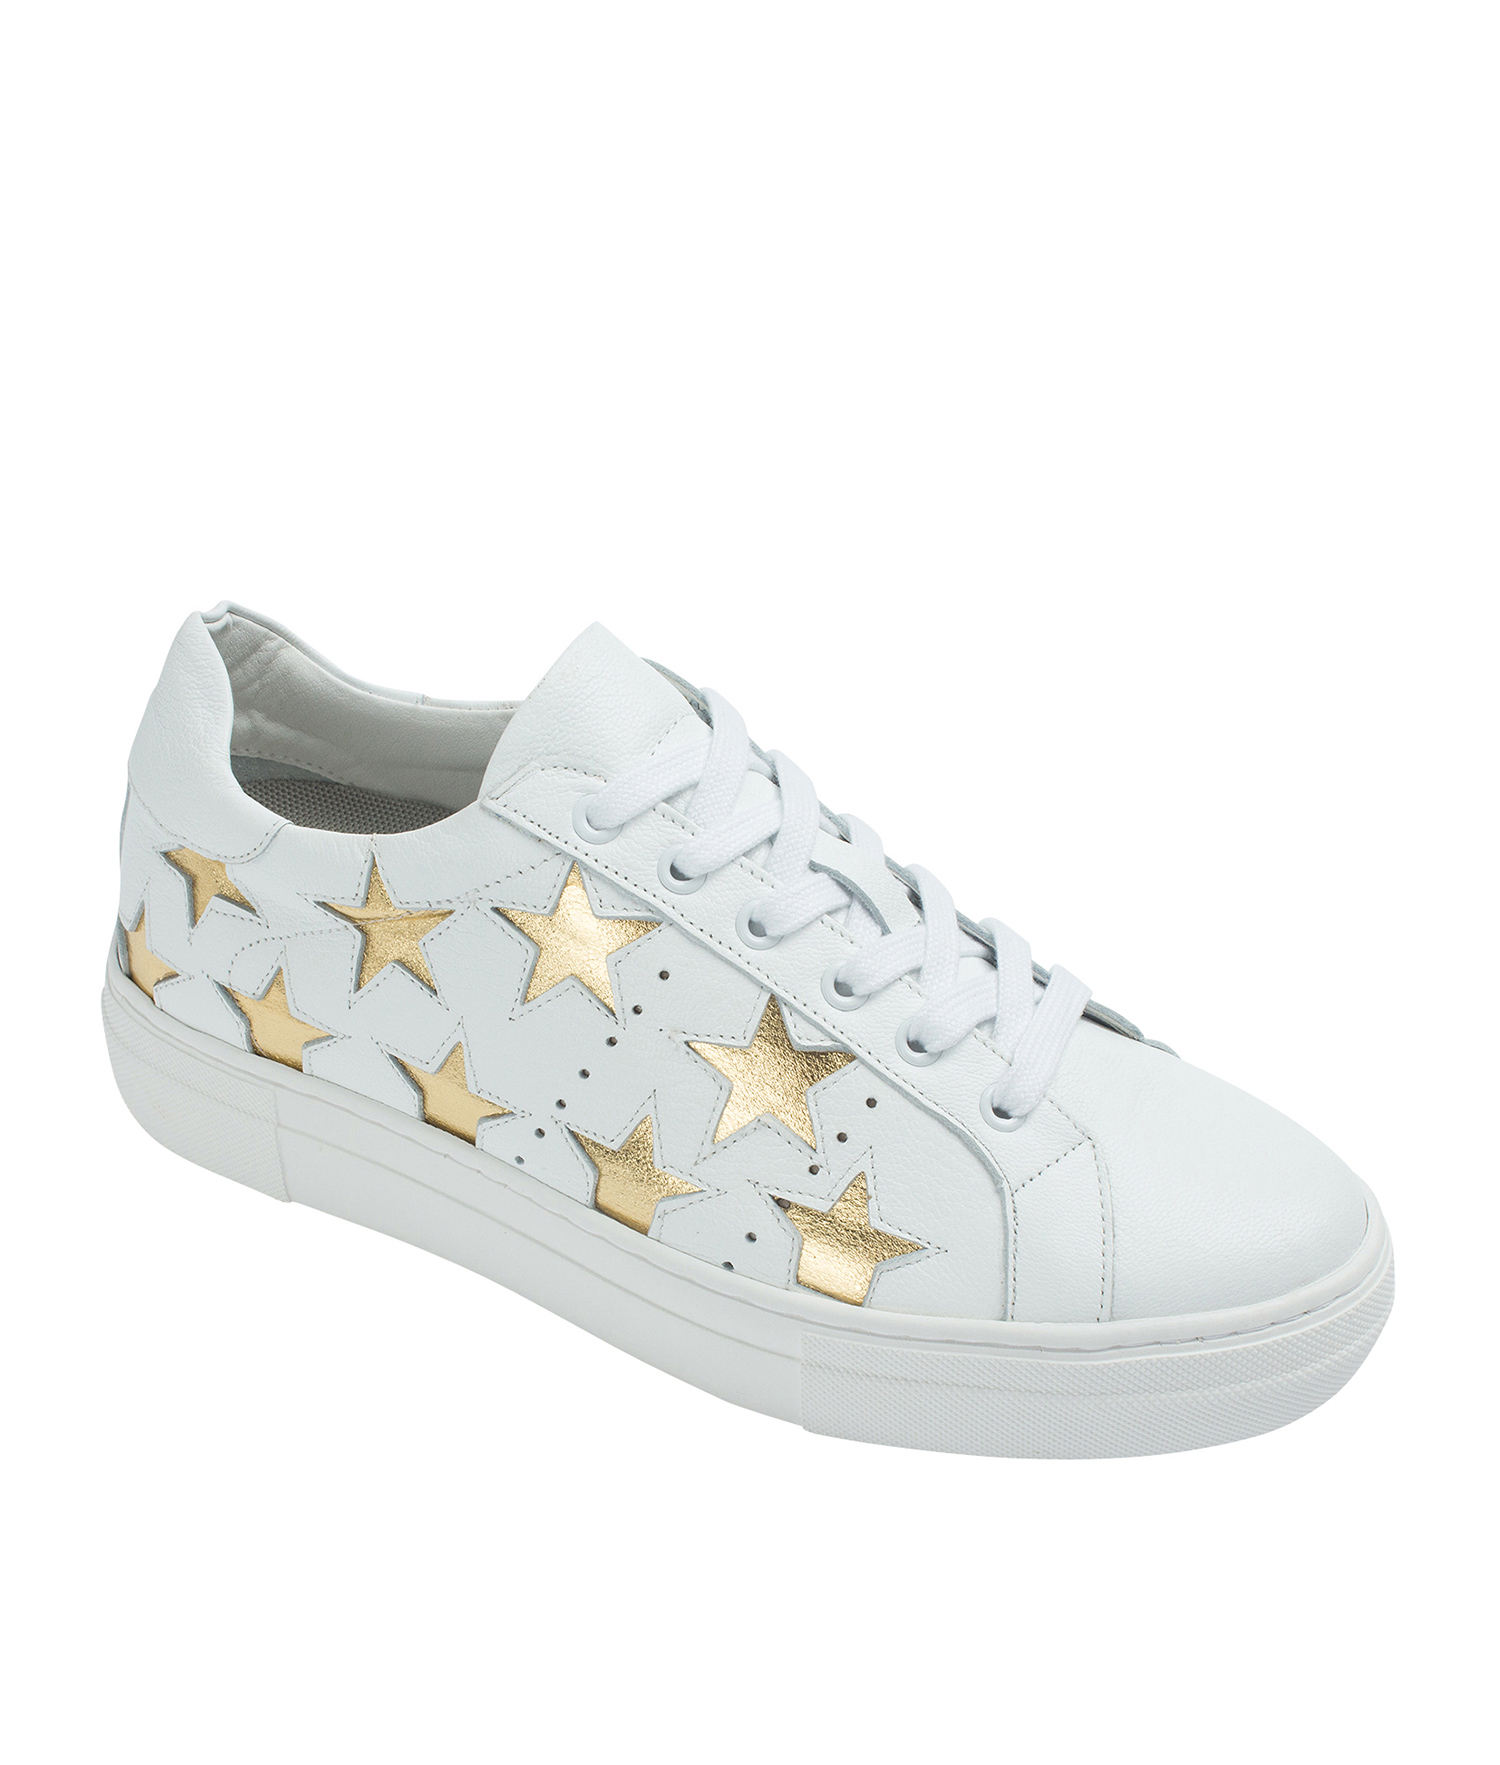 white sneakers with gold Online